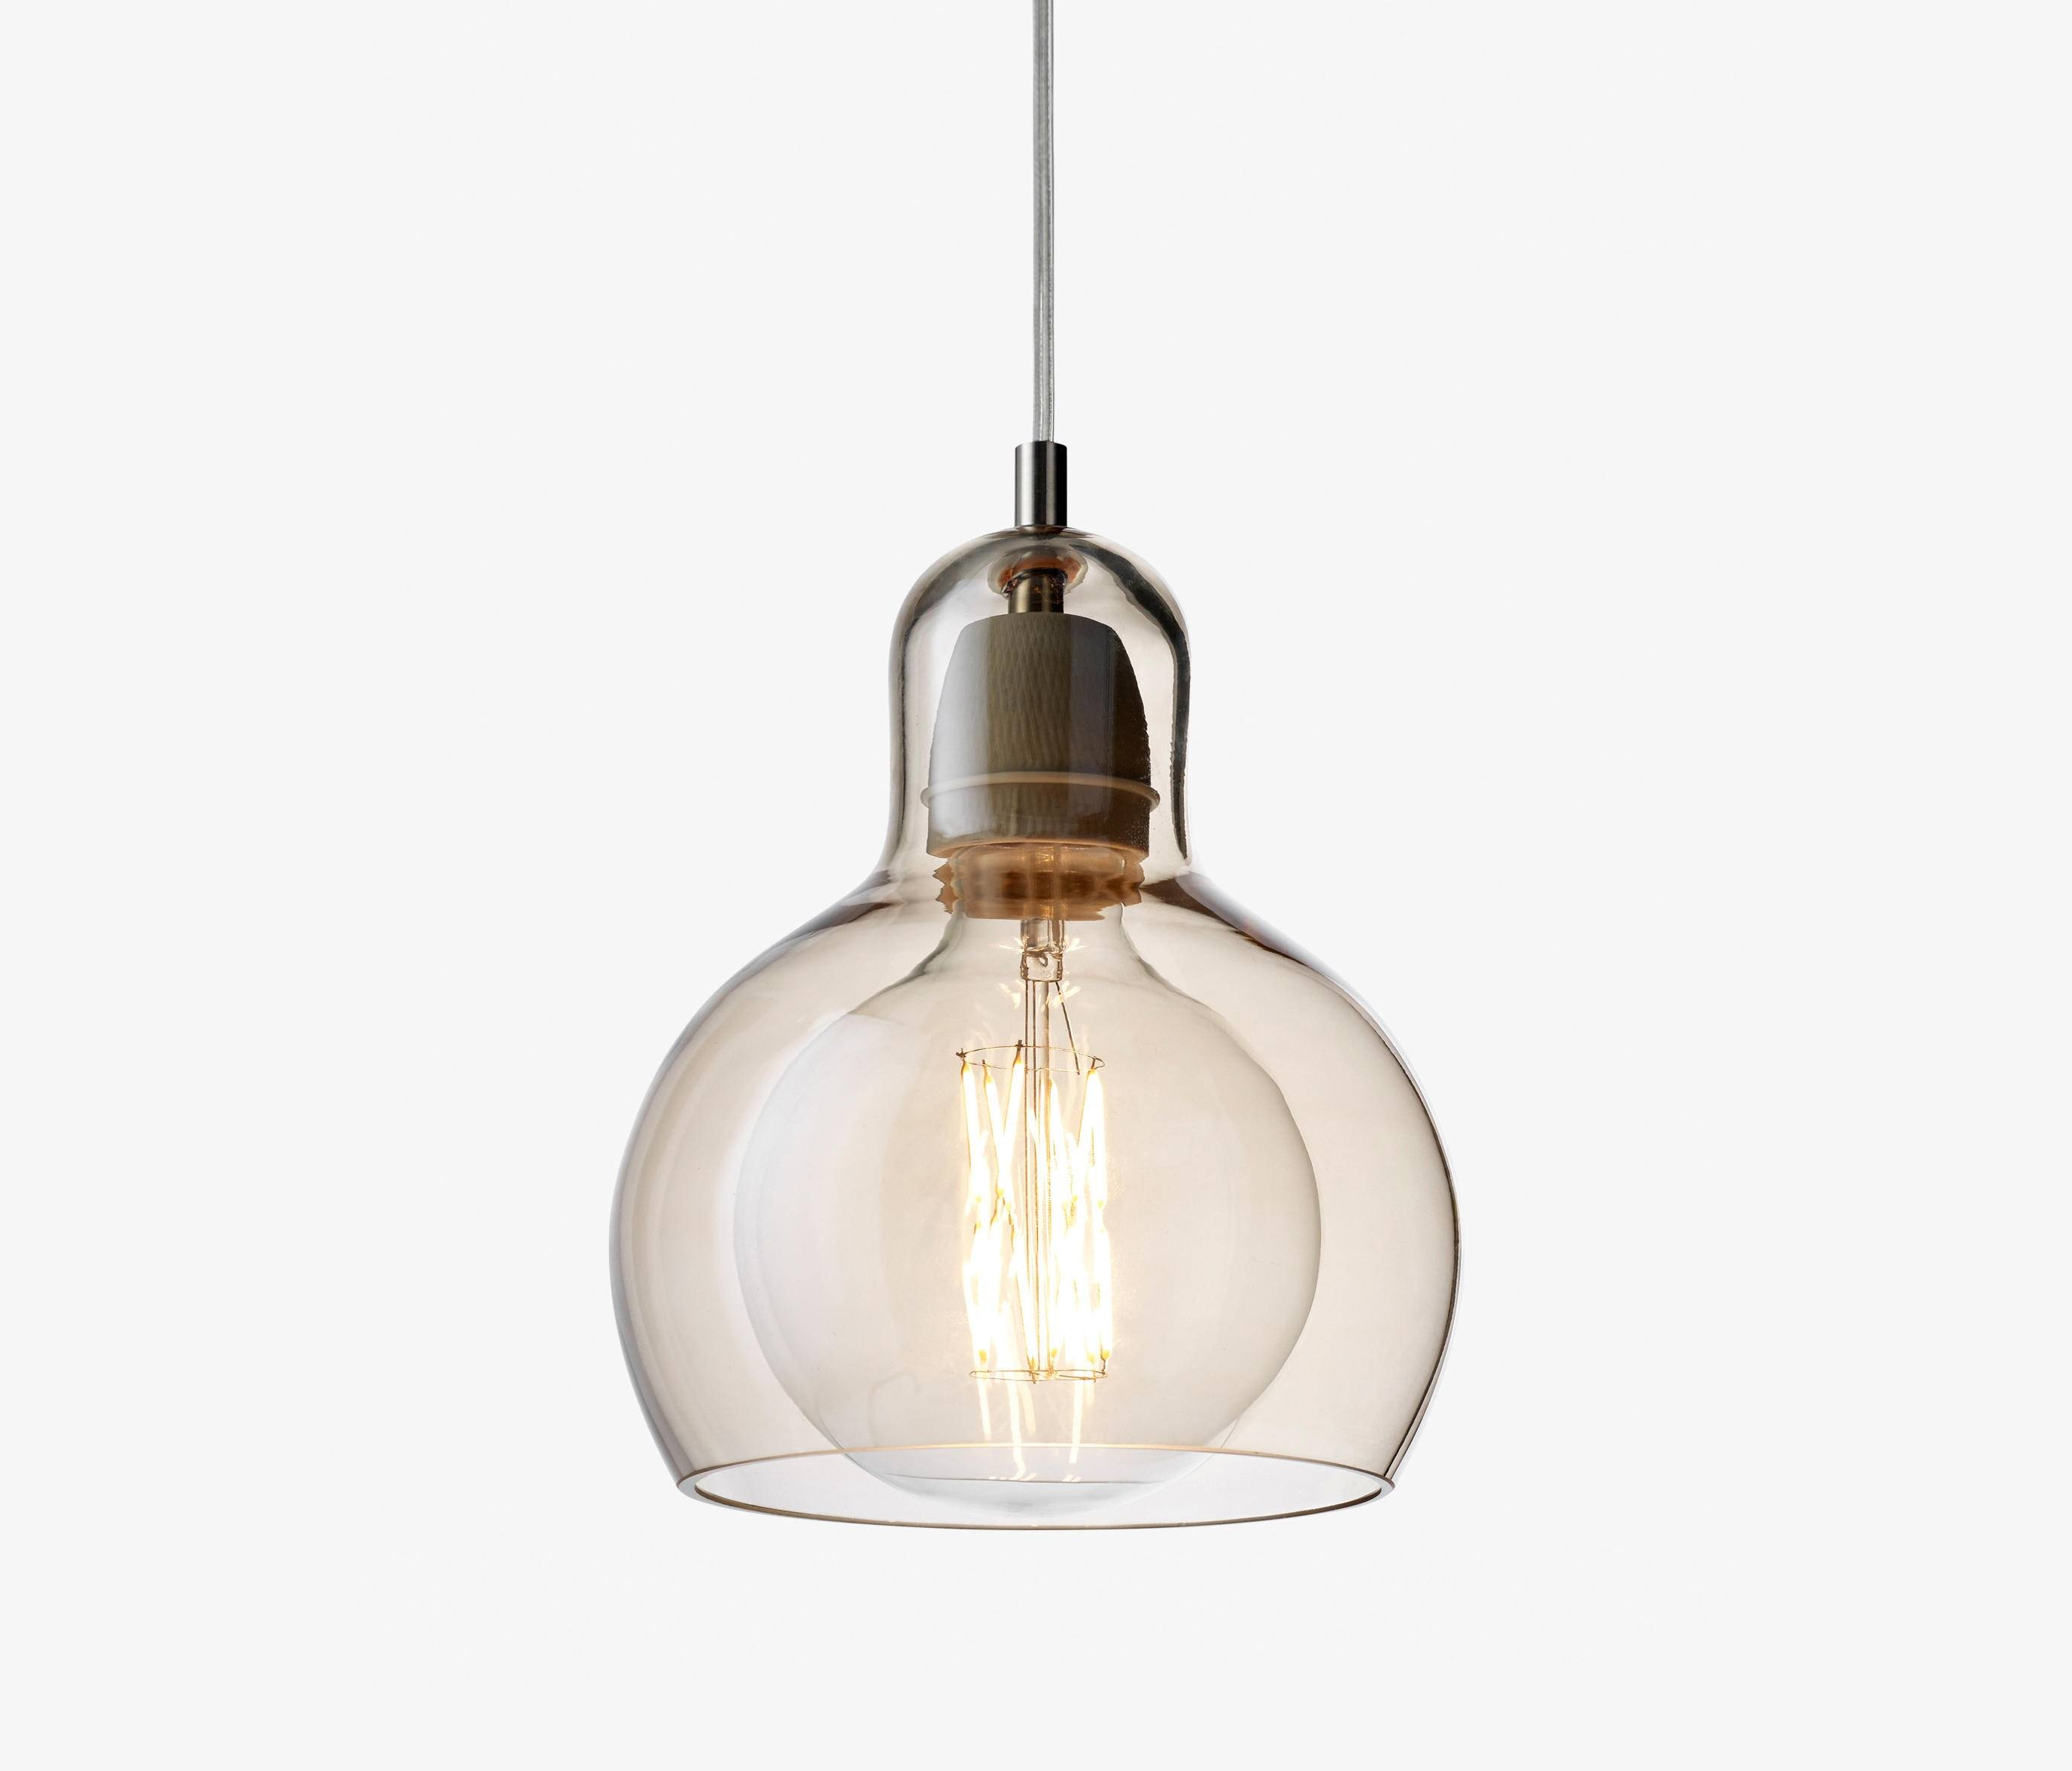 Mega Bulb Pendant Sr2 - General Lighting From &tradition | Architonic pertaining to Mega Bulb Pendant Lights (Image 12 of 15)